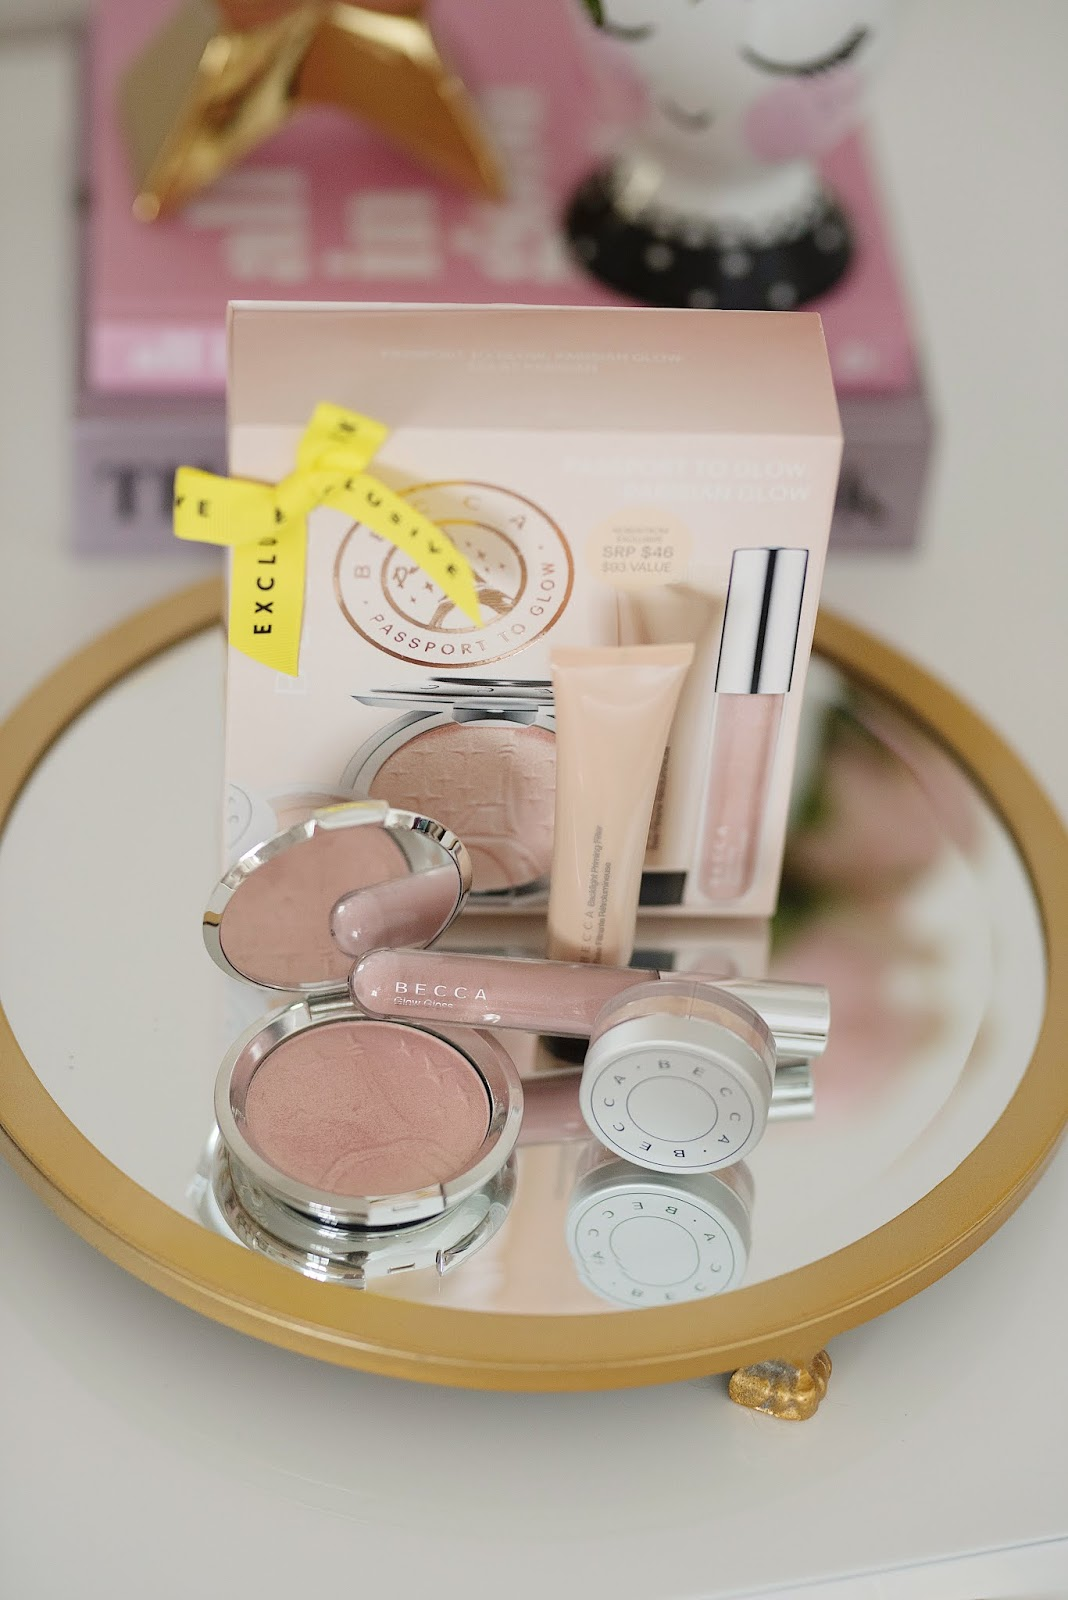 Nordstrom Anniversary Sale 2018 Becca Cosmetics Parisian Glow Set - Something Delightful Blog